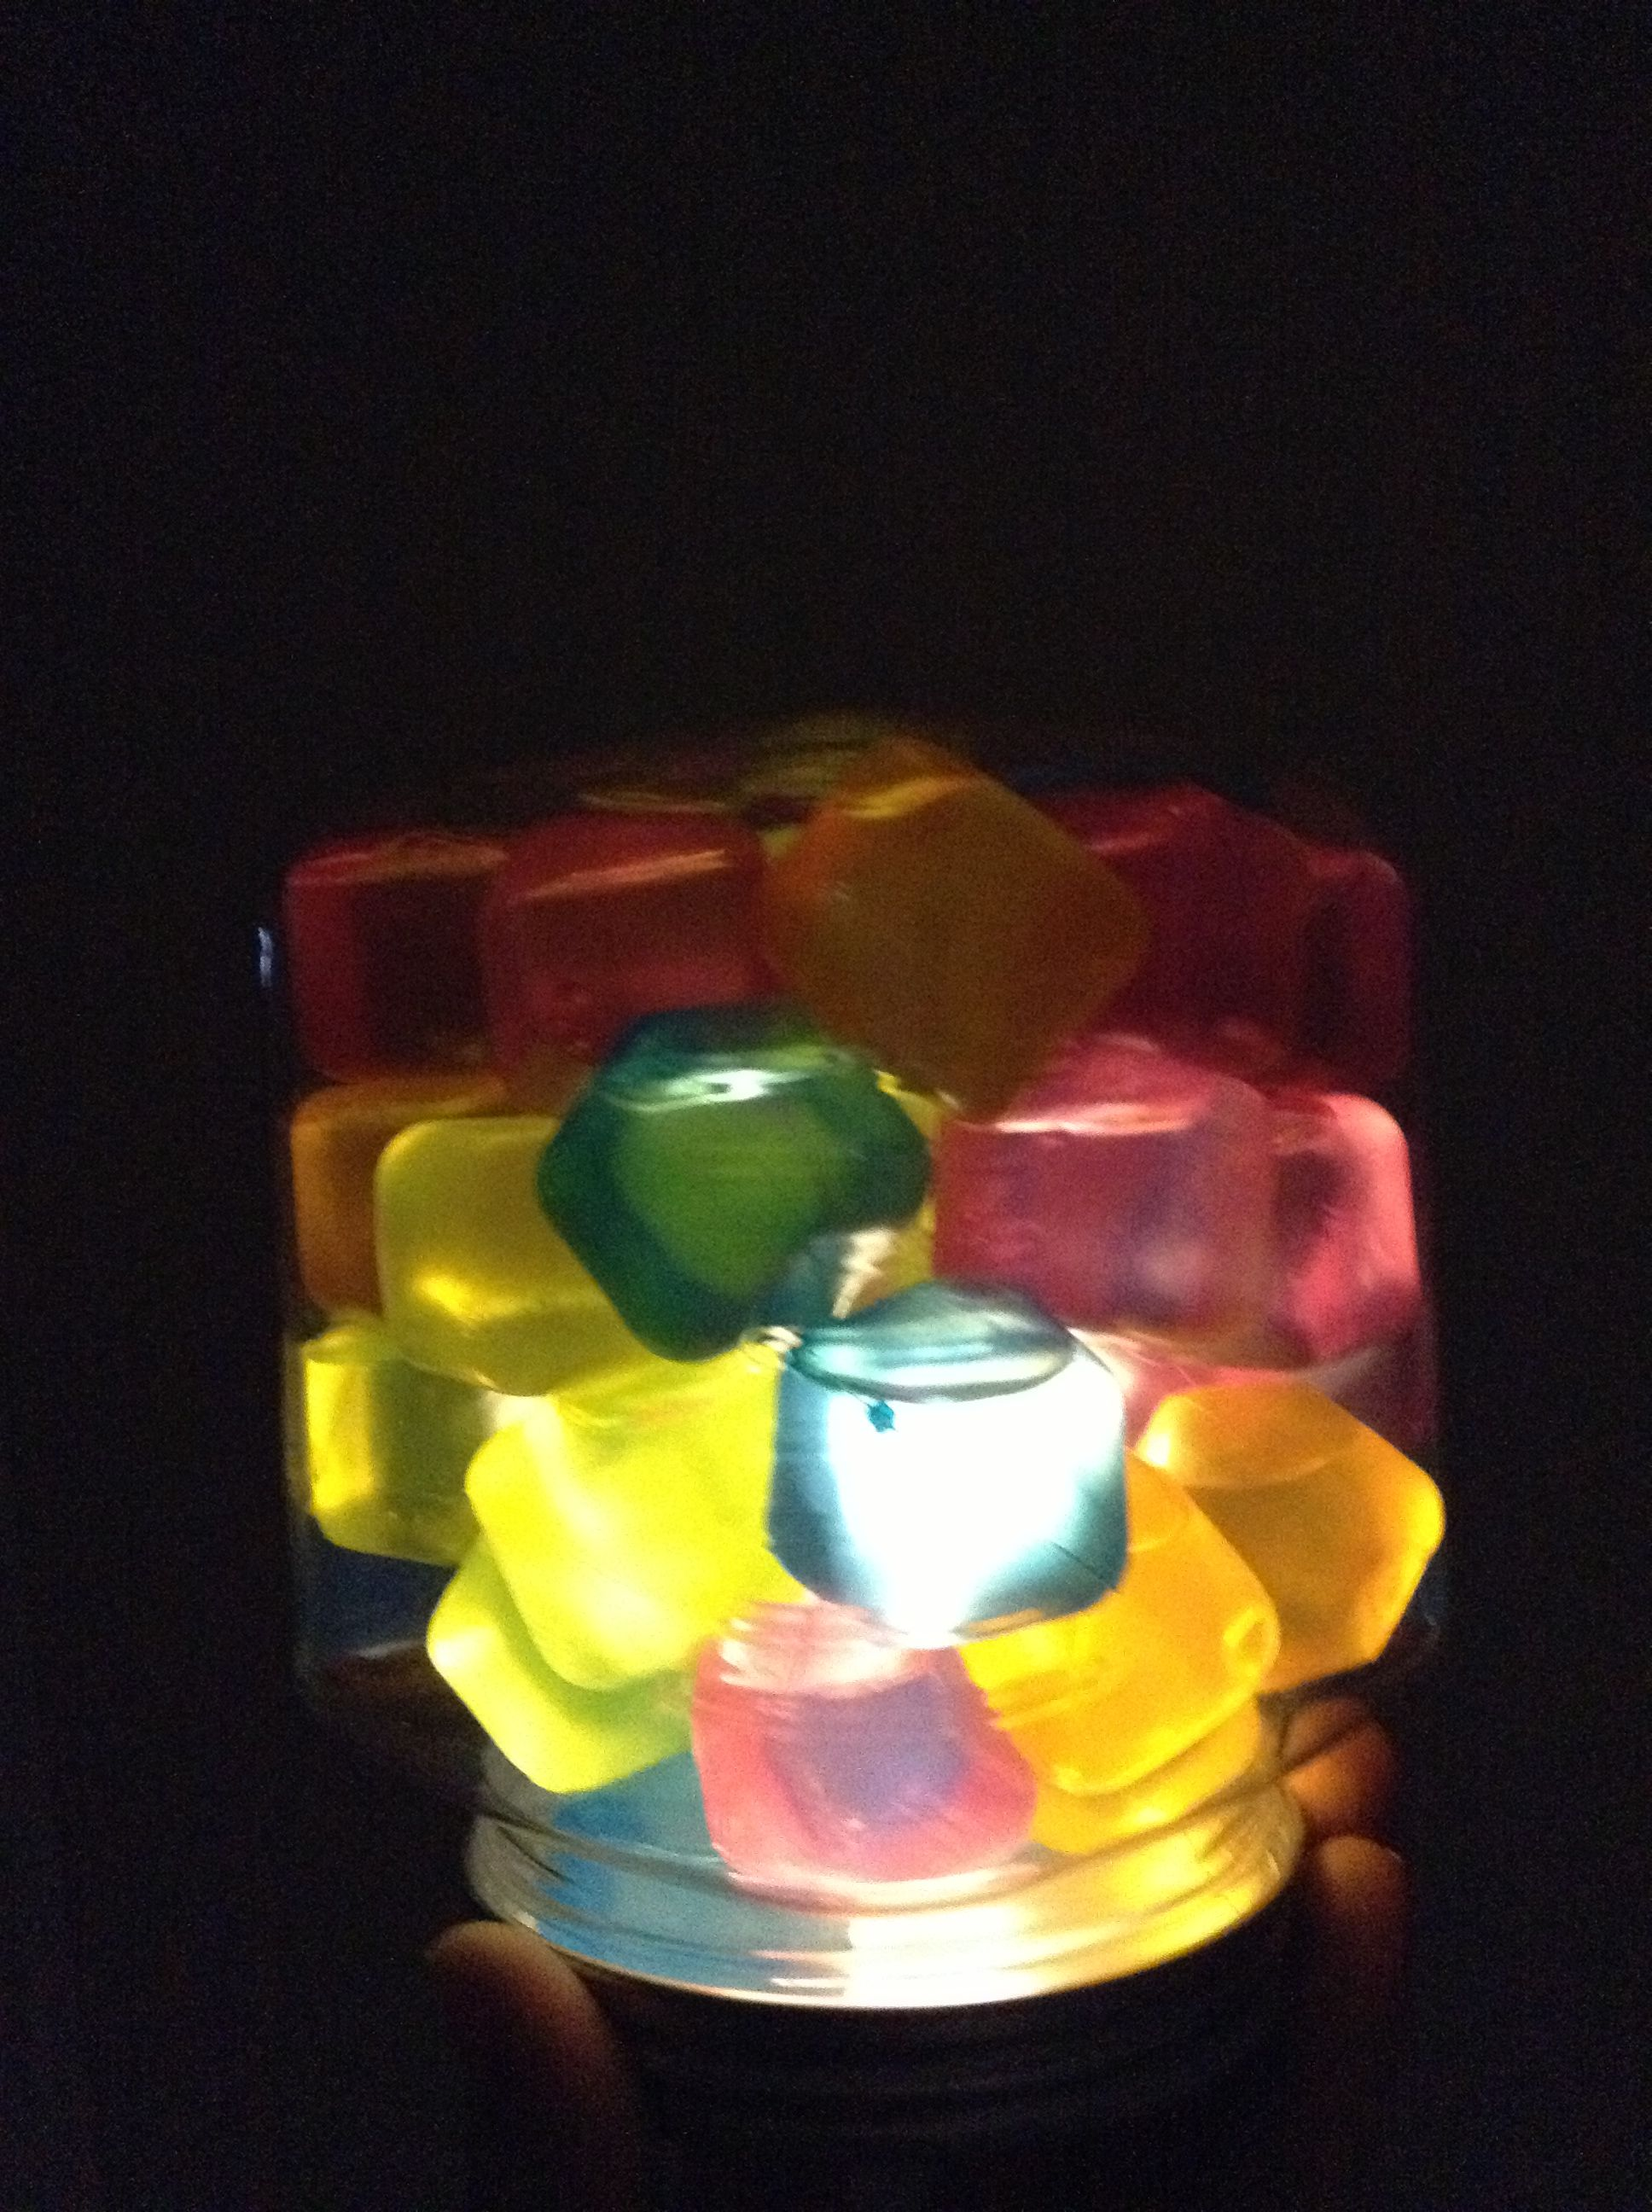 Ice cube blocks, container and light. @playing_in_k